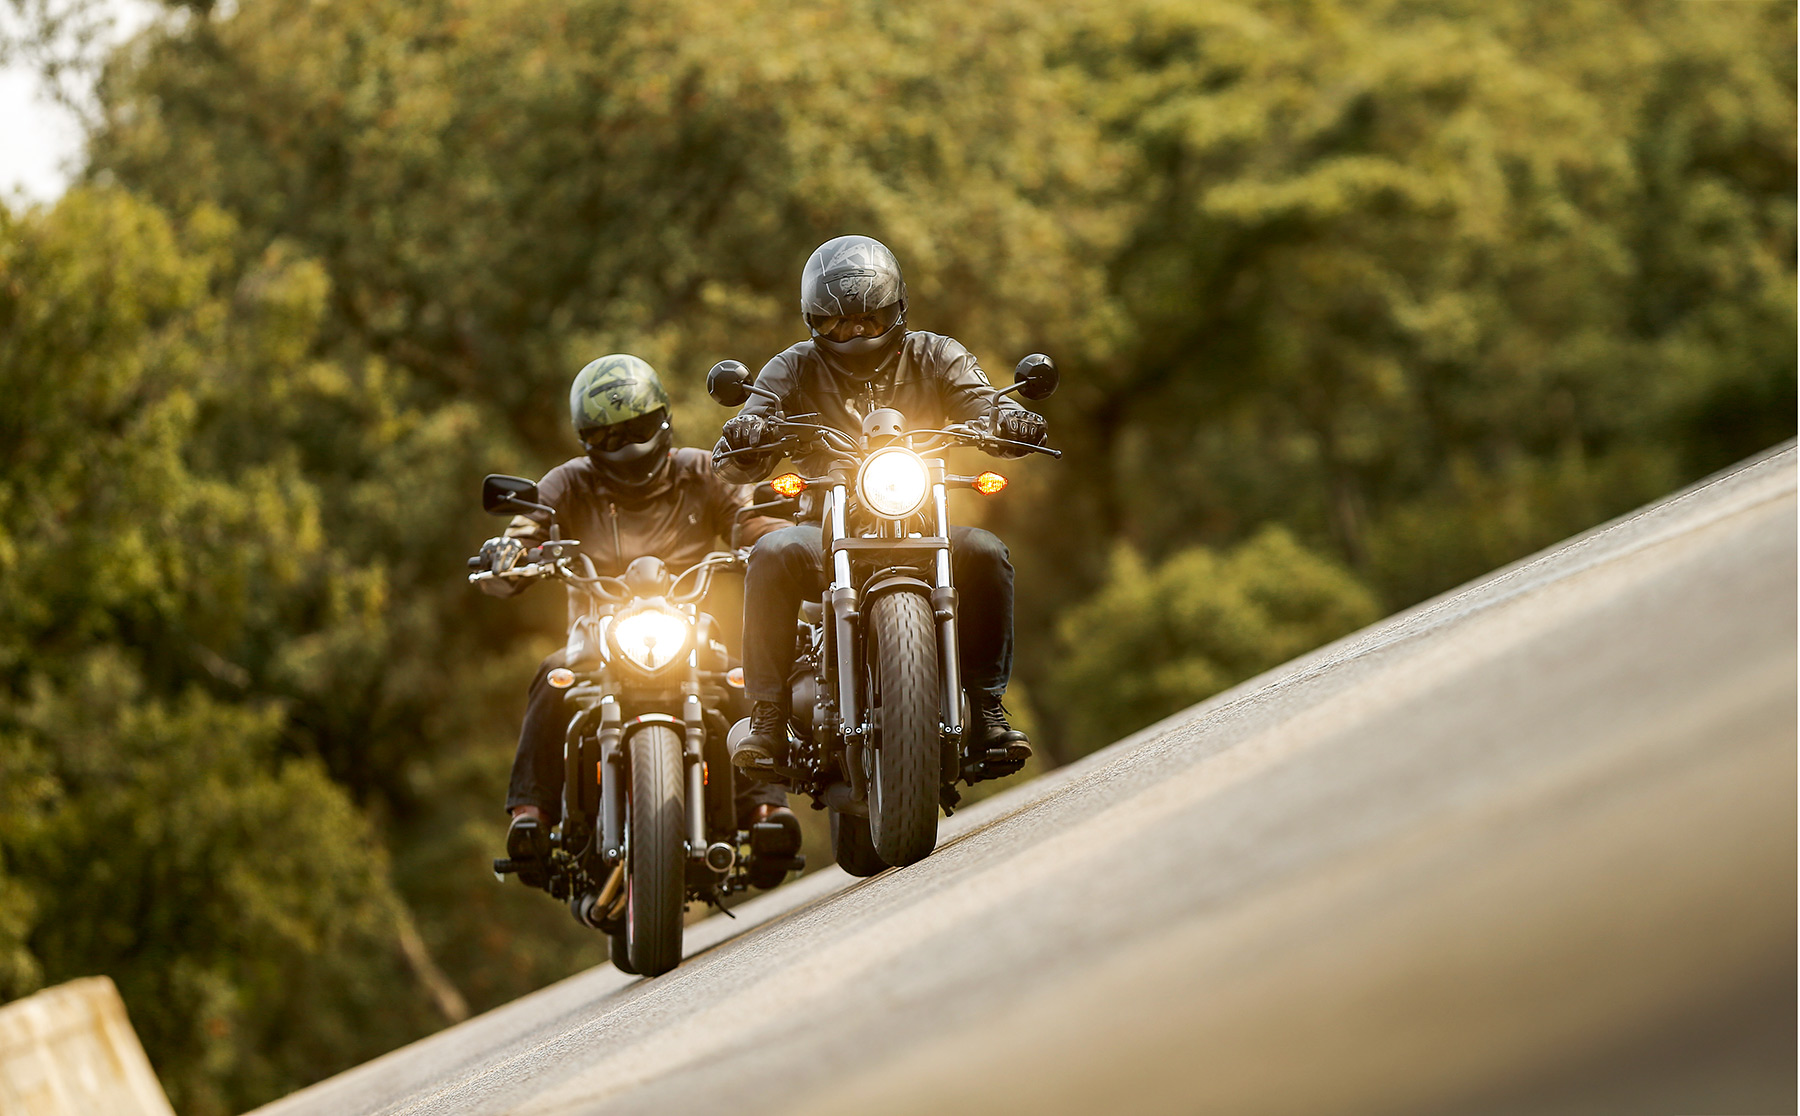 Comparativa custom: Kawasaki Vulcan S vs Honda Rebel